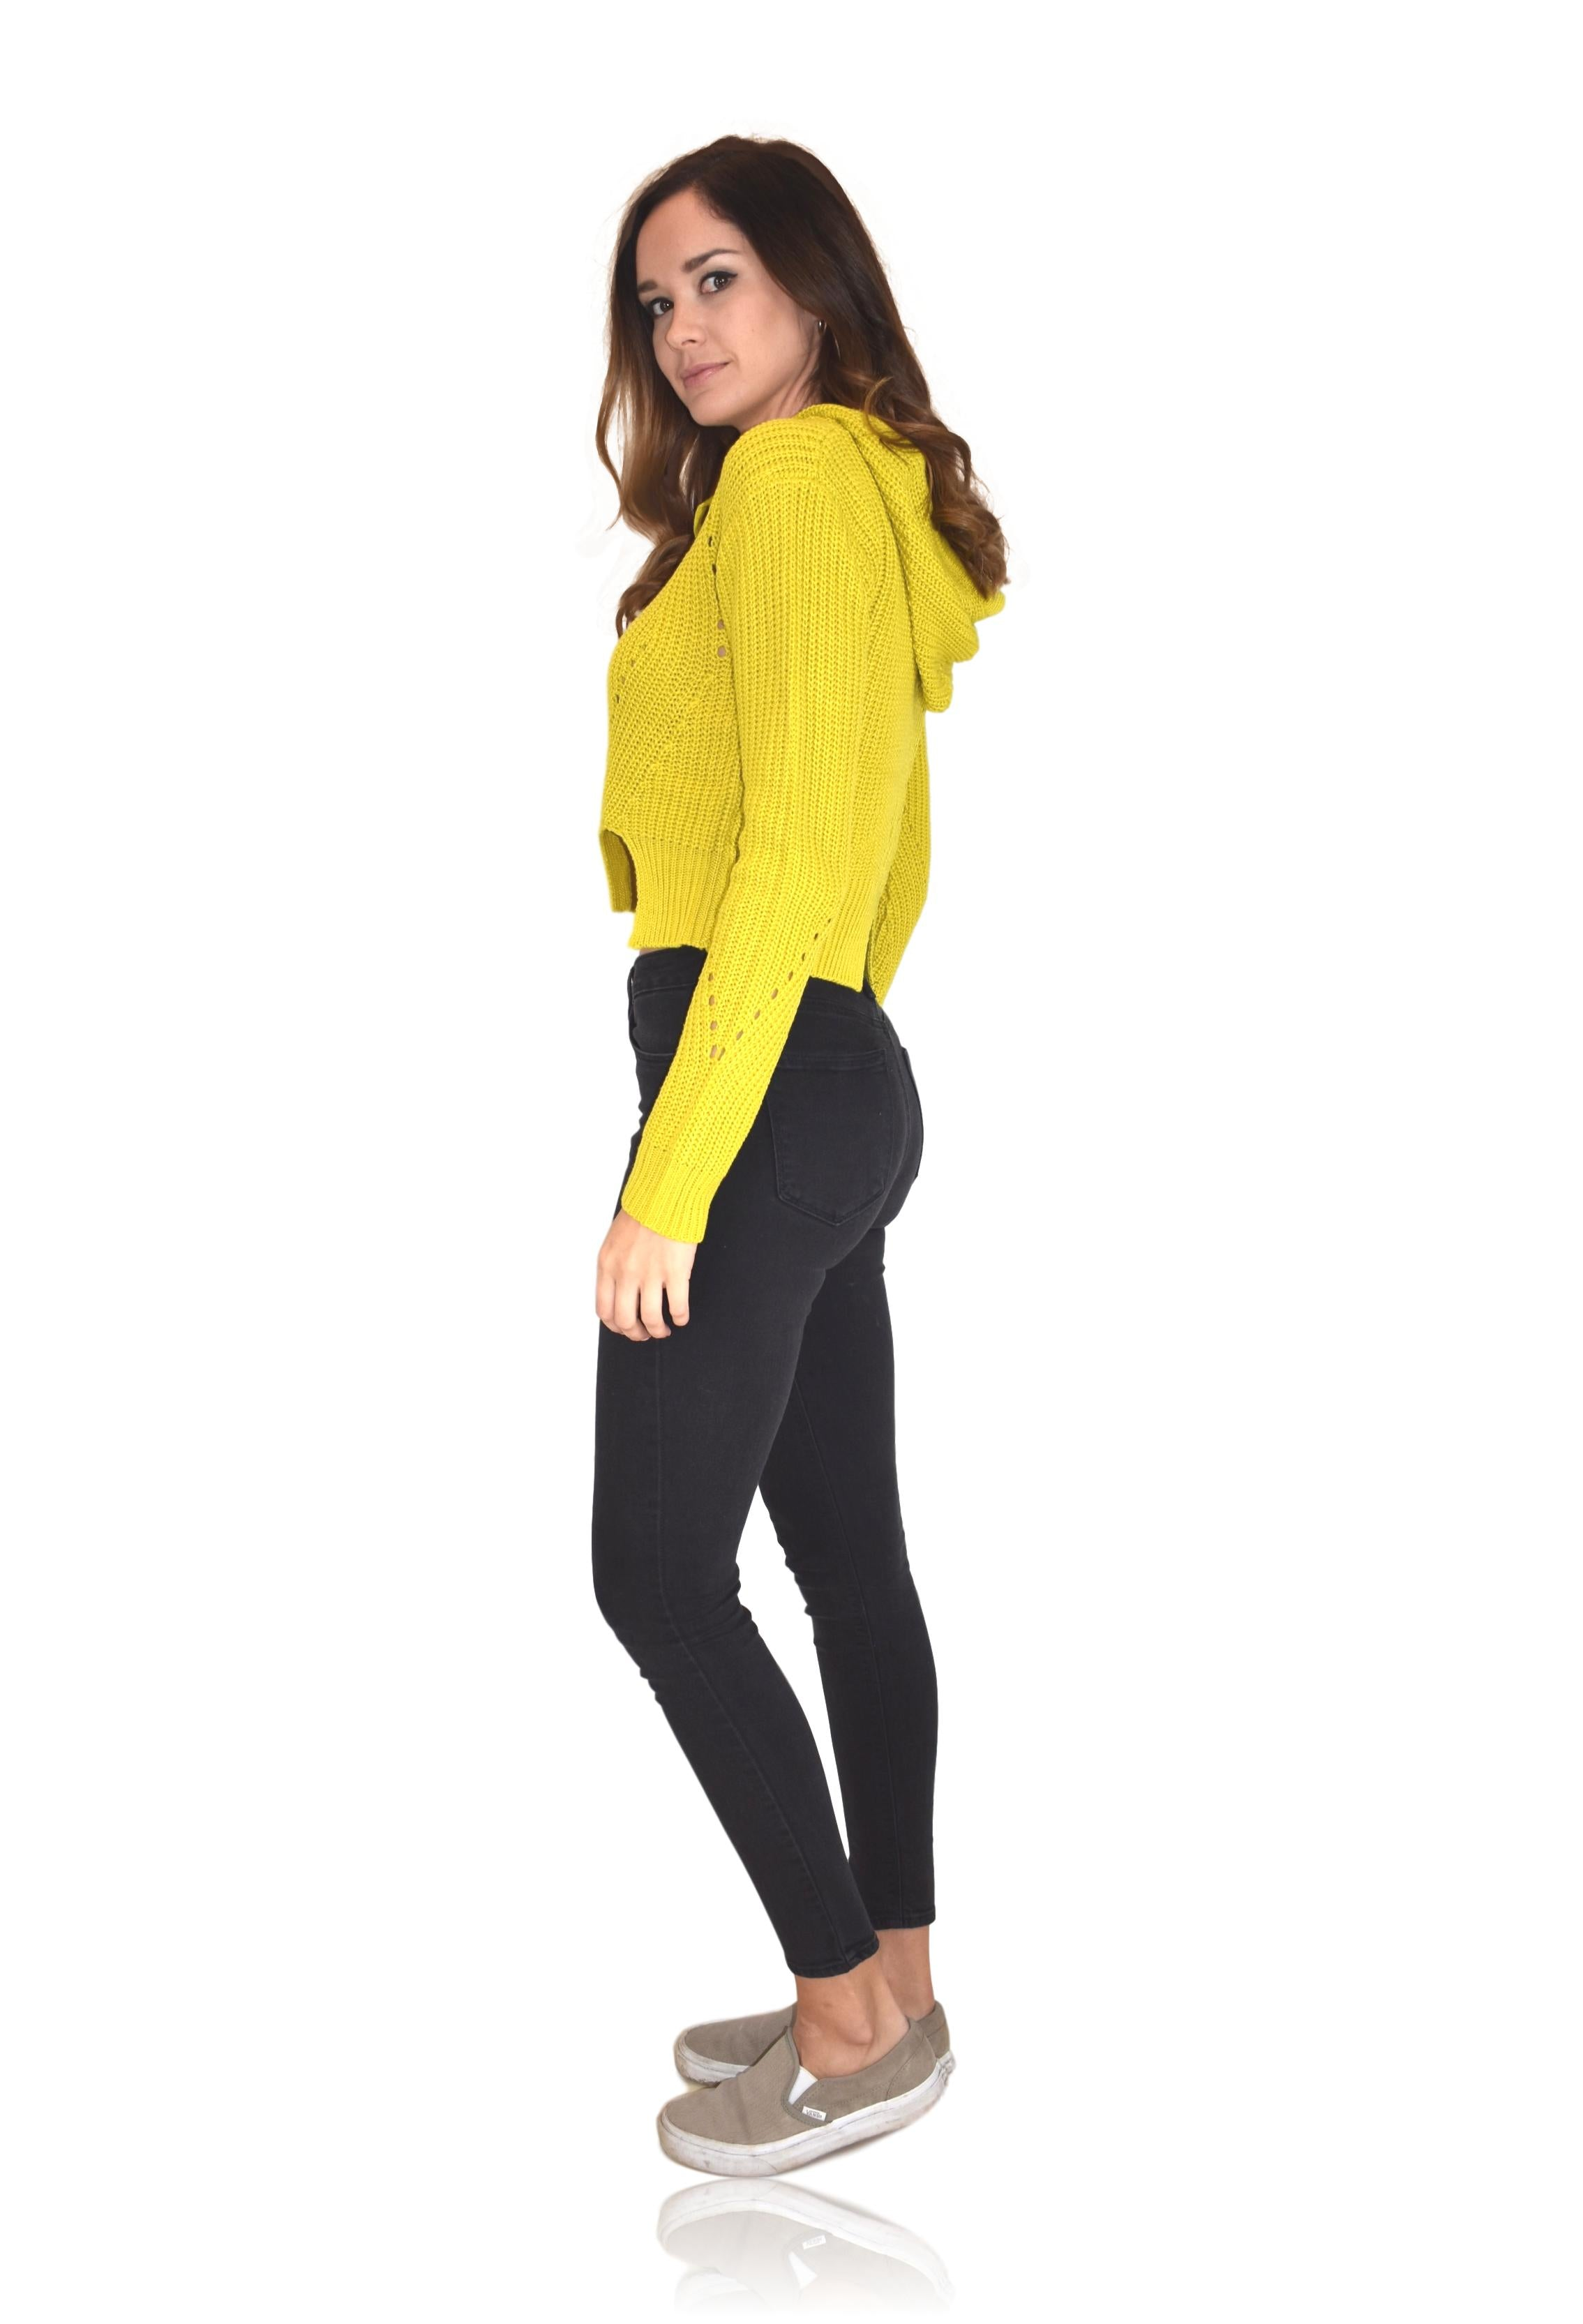 MOLLY SWEATER IN LIME / FINAL CLEARANCE